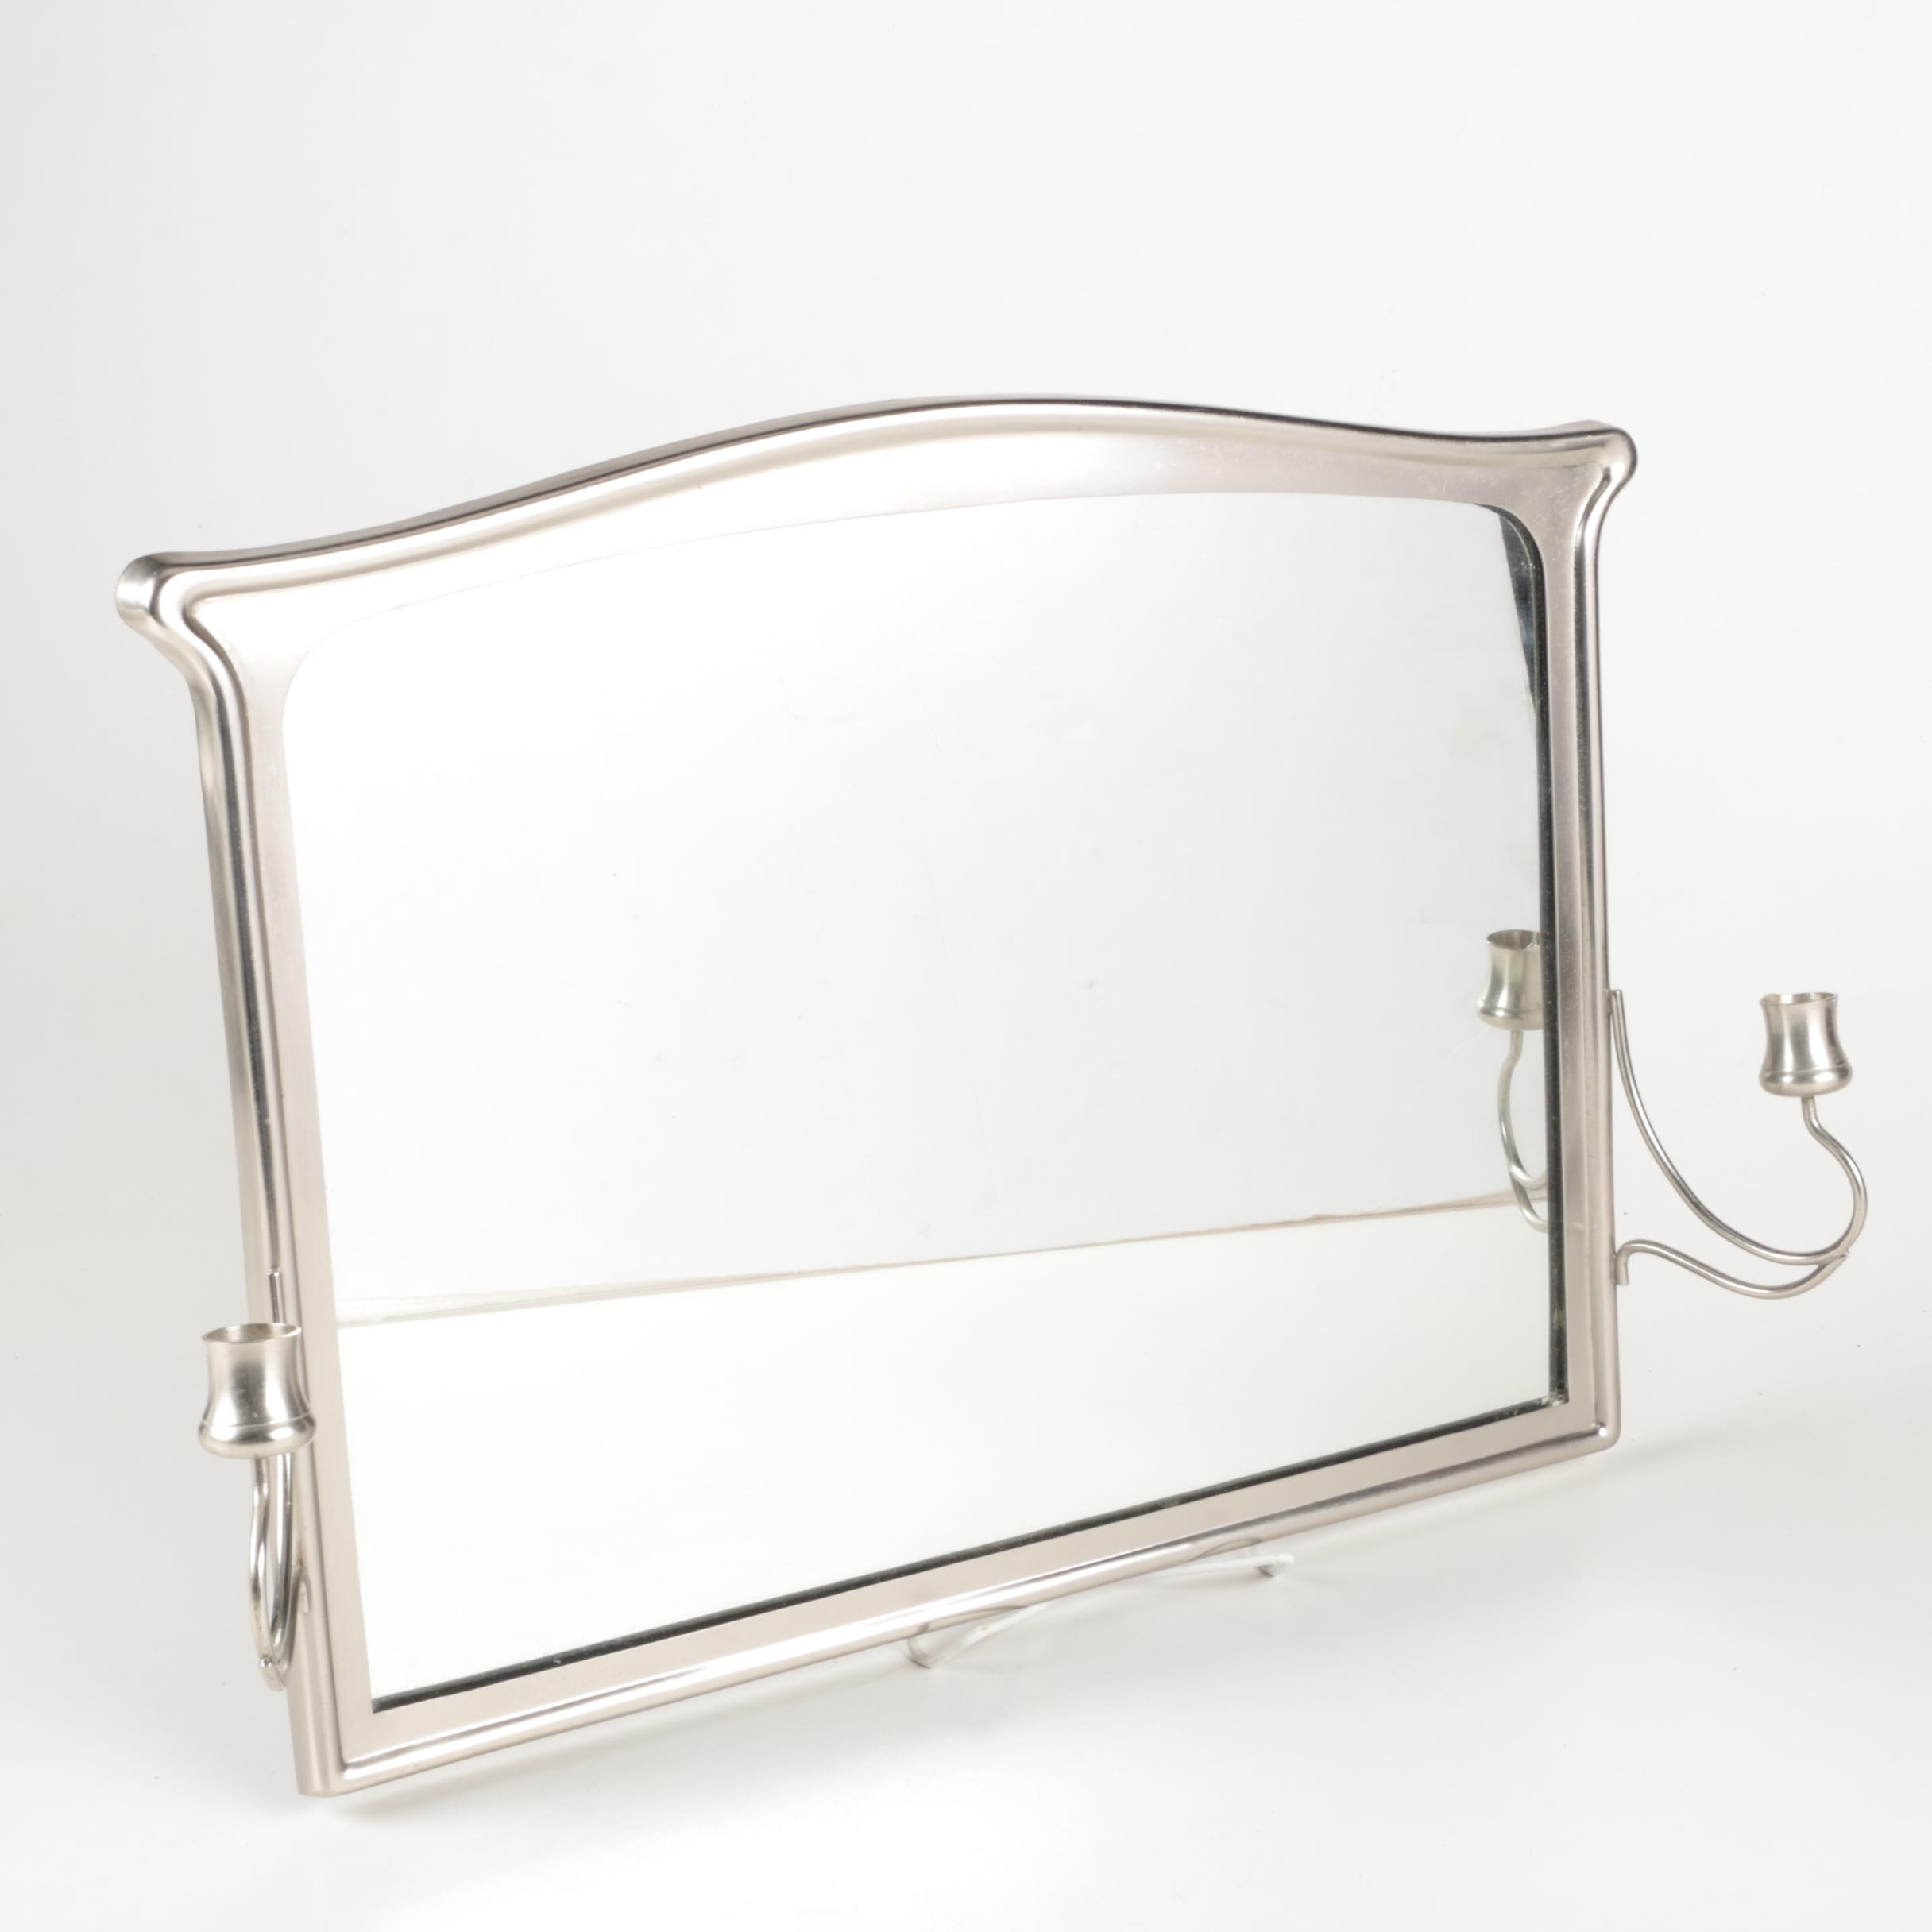 Silver Tone Framed Wall Mirror with Candle Holder Accents